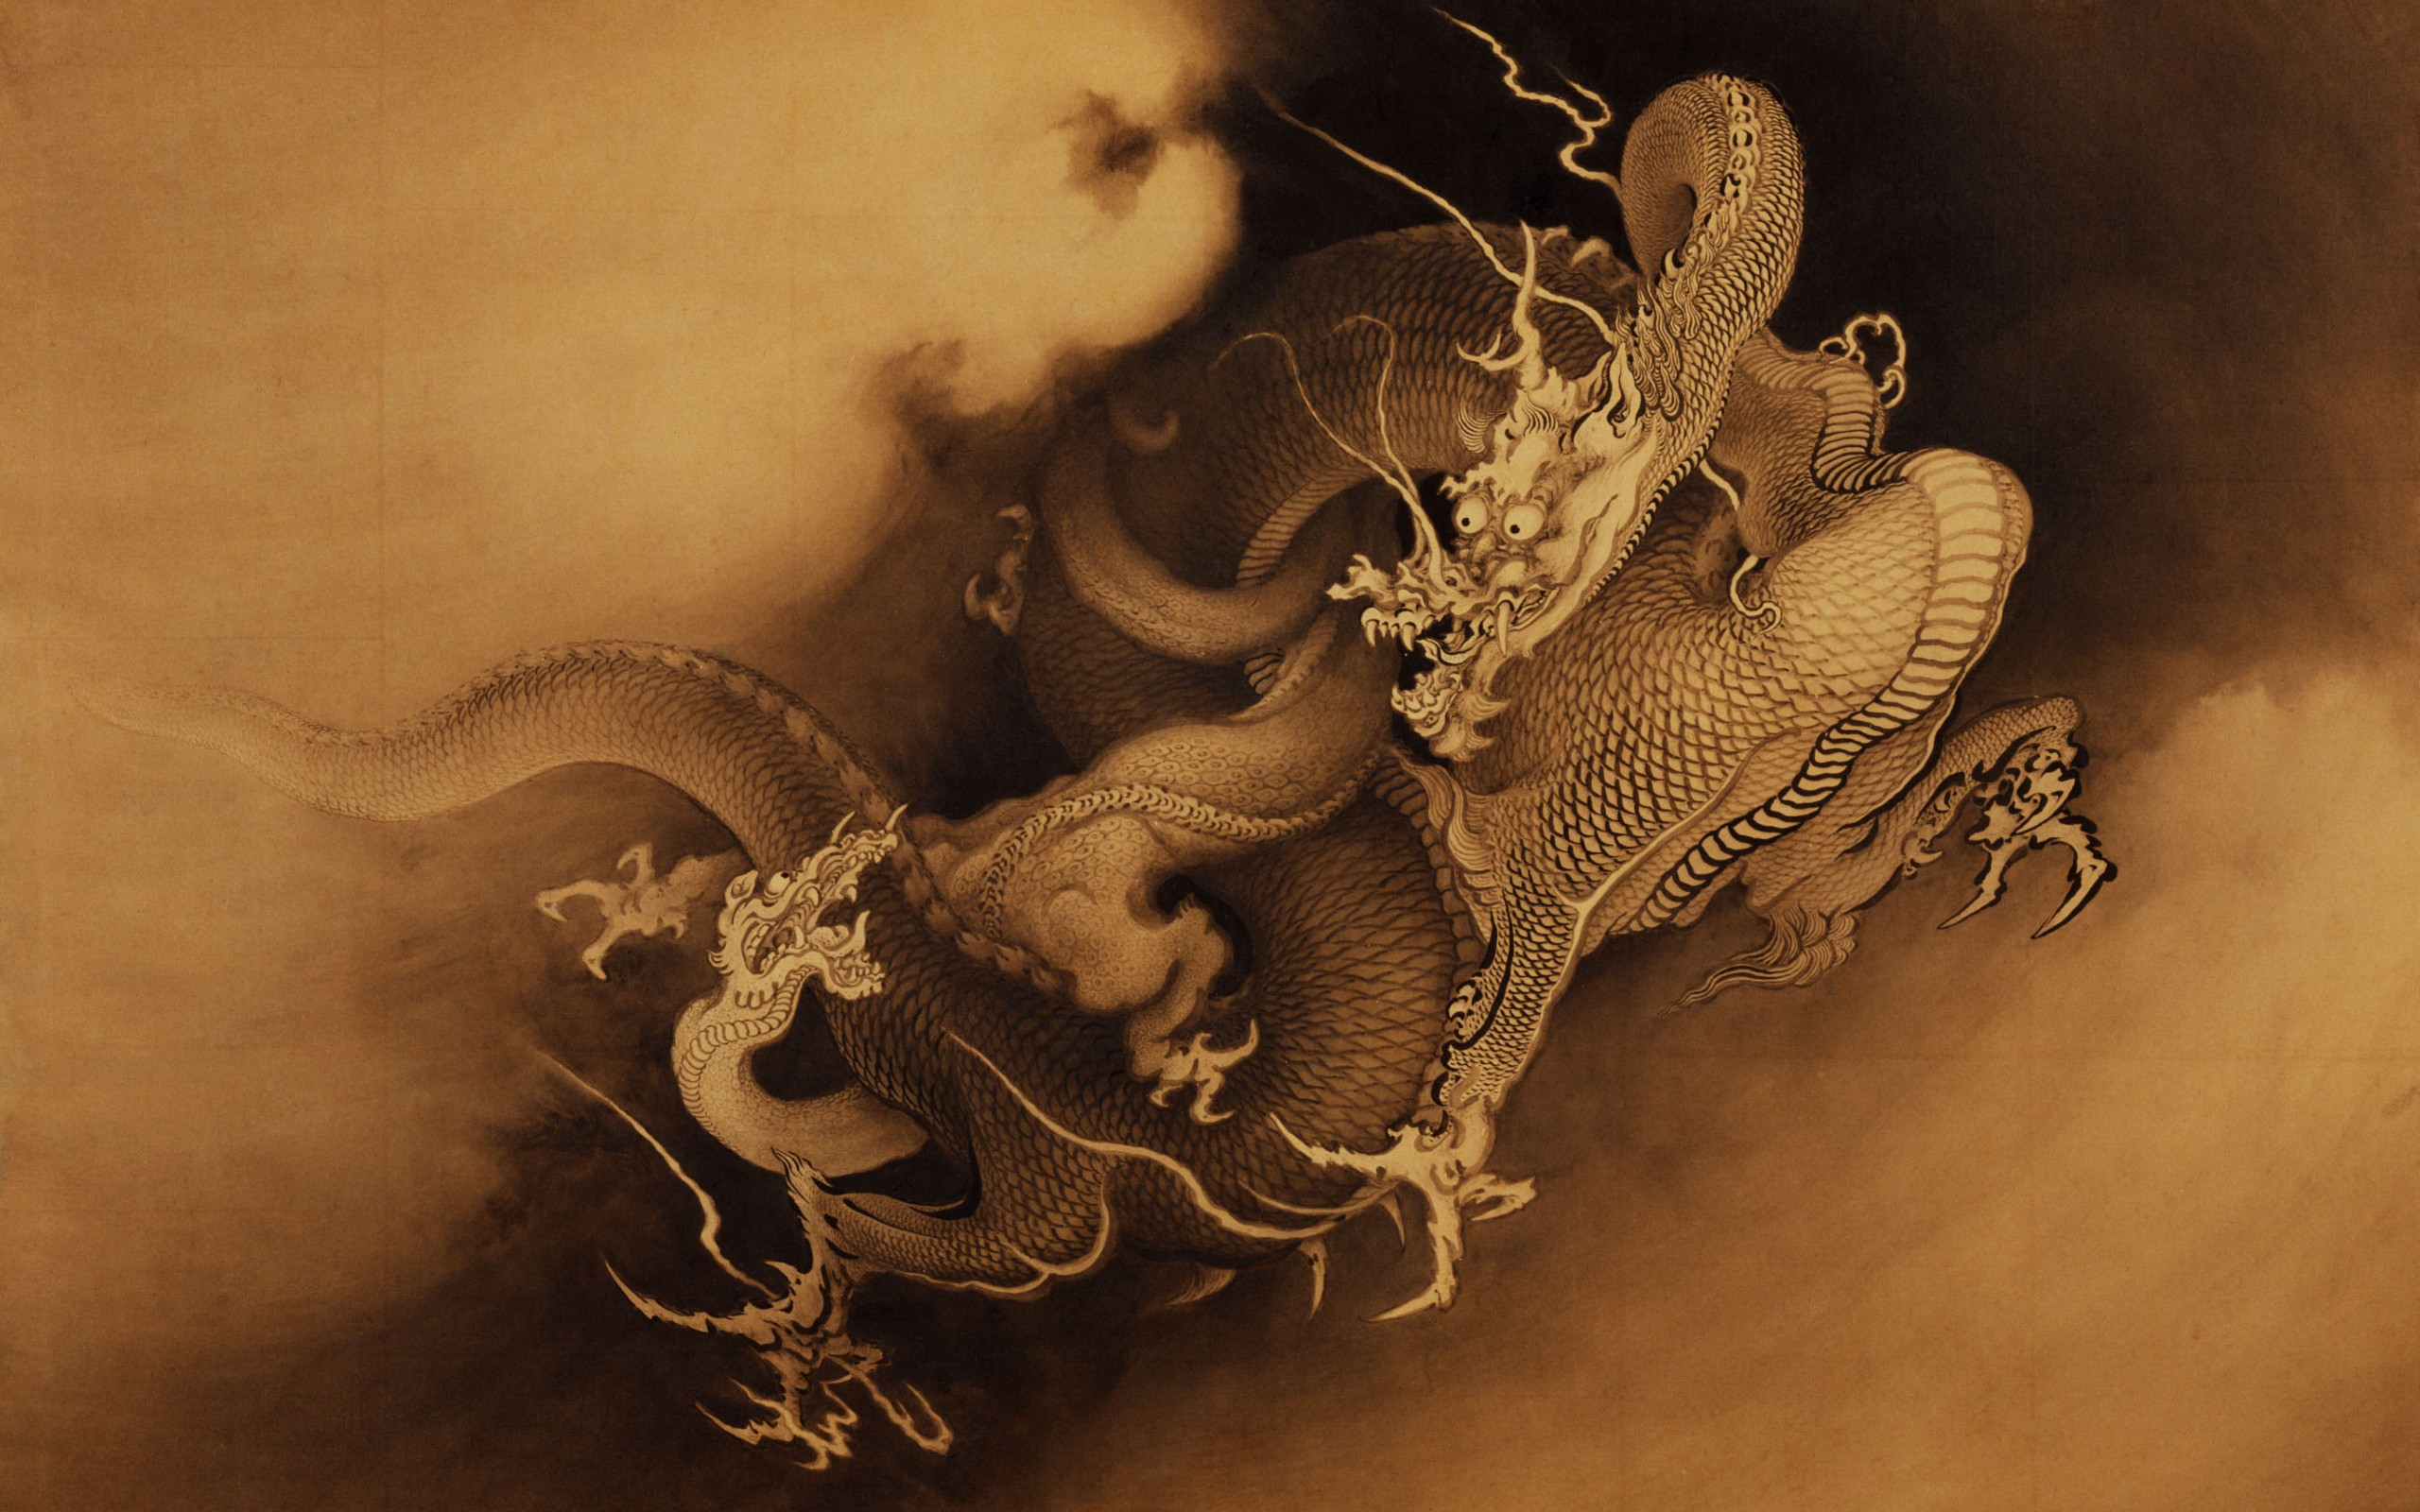 32 Chinese Dragon Hd Wallpapers Background Images